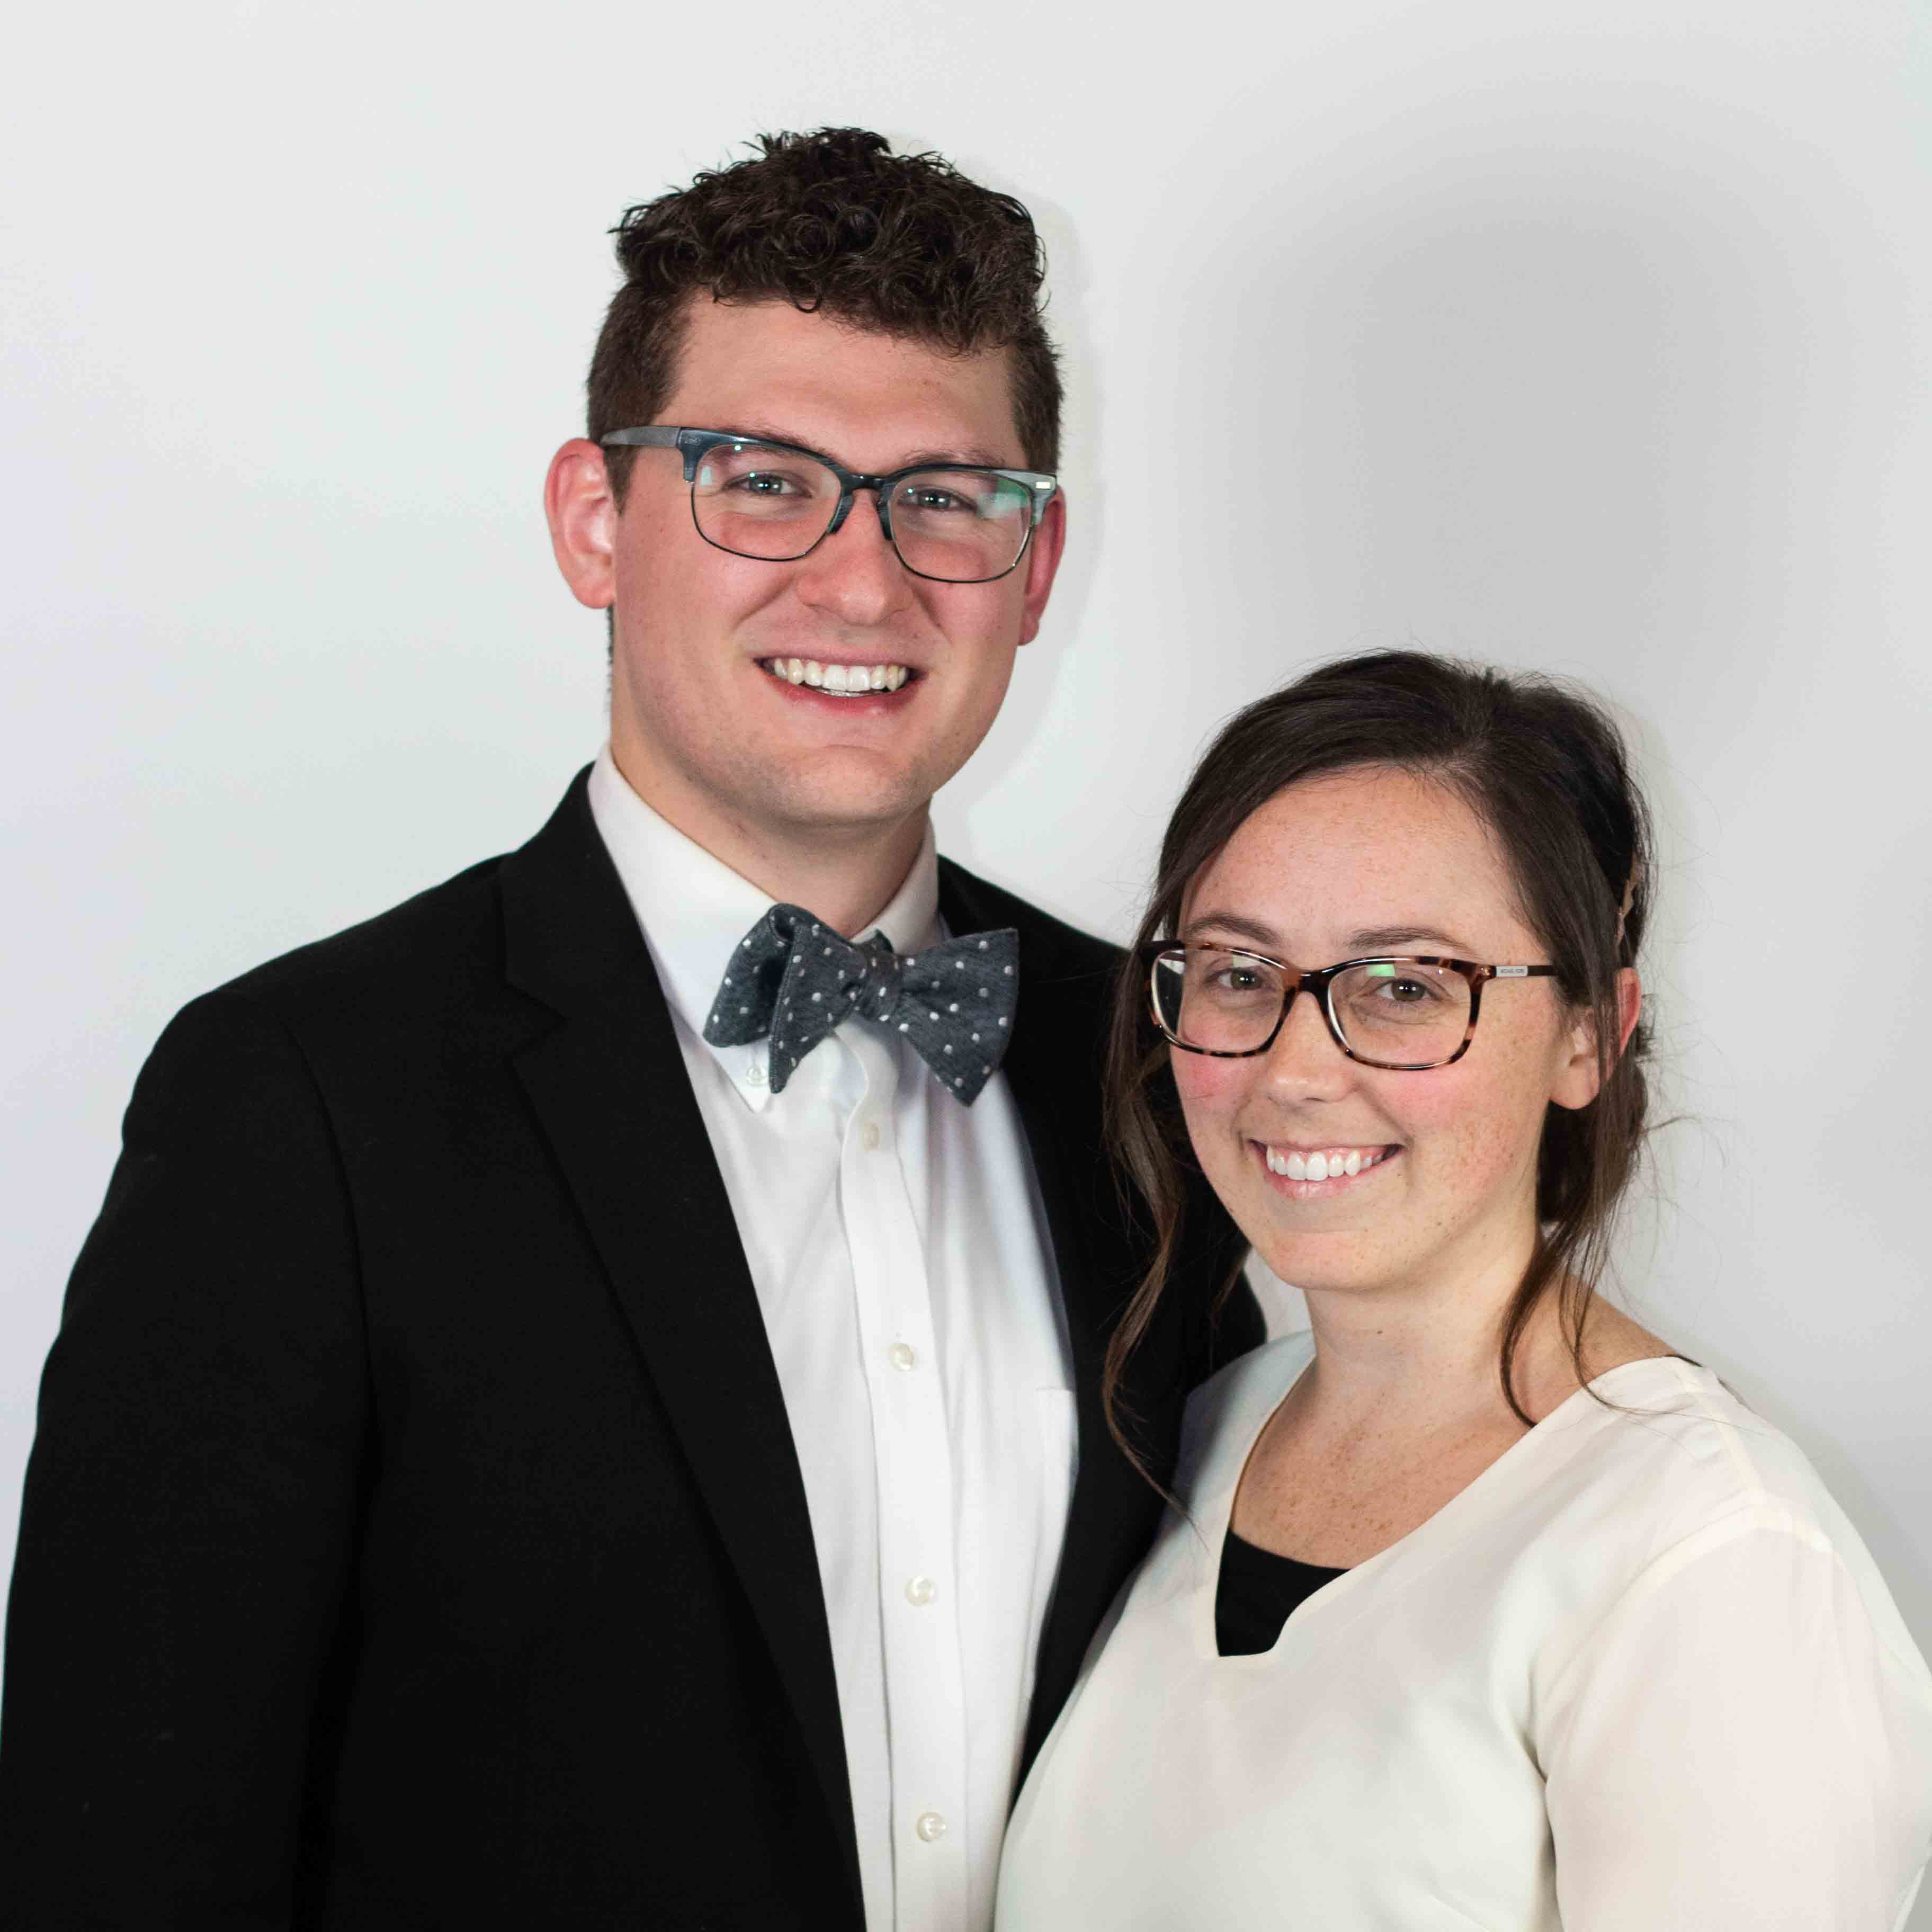 Youth Ministries - Wendell and Morgan Evans